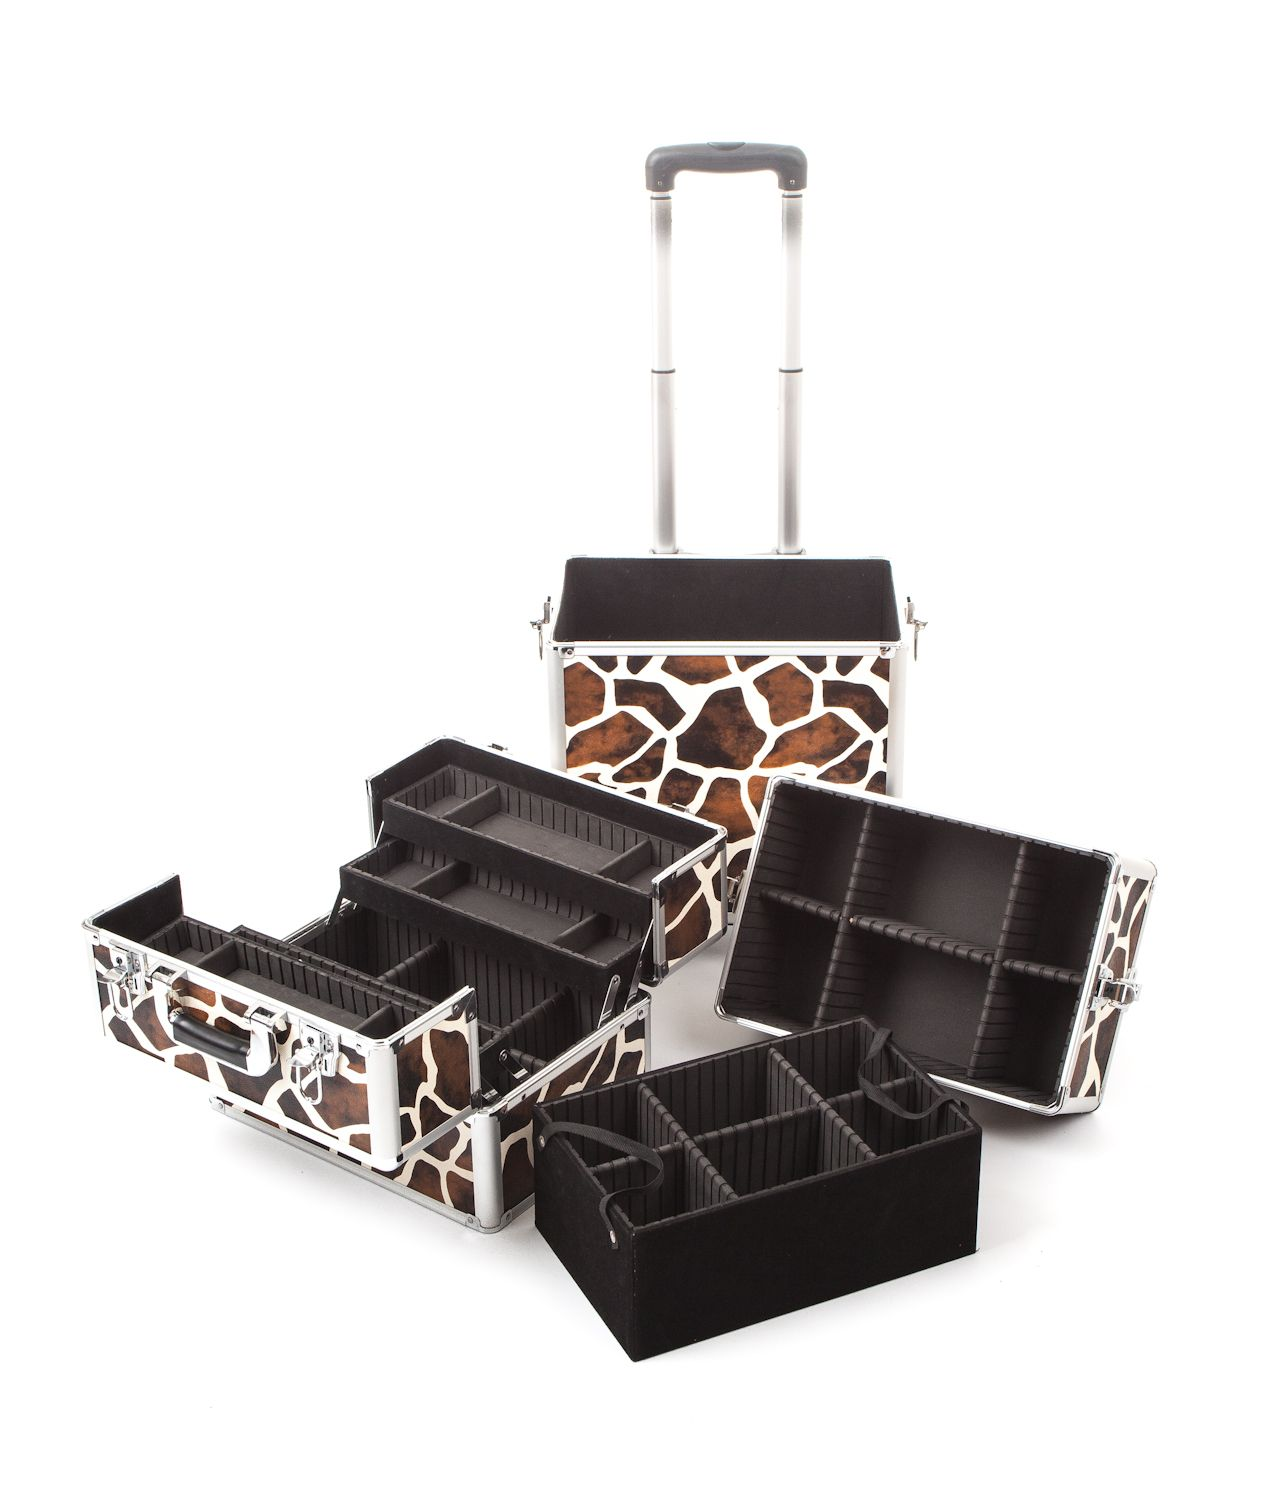 The Urbanity Classic Giraffe Animal Print Beauty Trolley is perfect for professional mobile beauticians, nail technicians and hairdressers.  It breaks down so you can custom build it to suit your own needs.  With lots of seperate compartments, it's the perfect beauty storage solution!